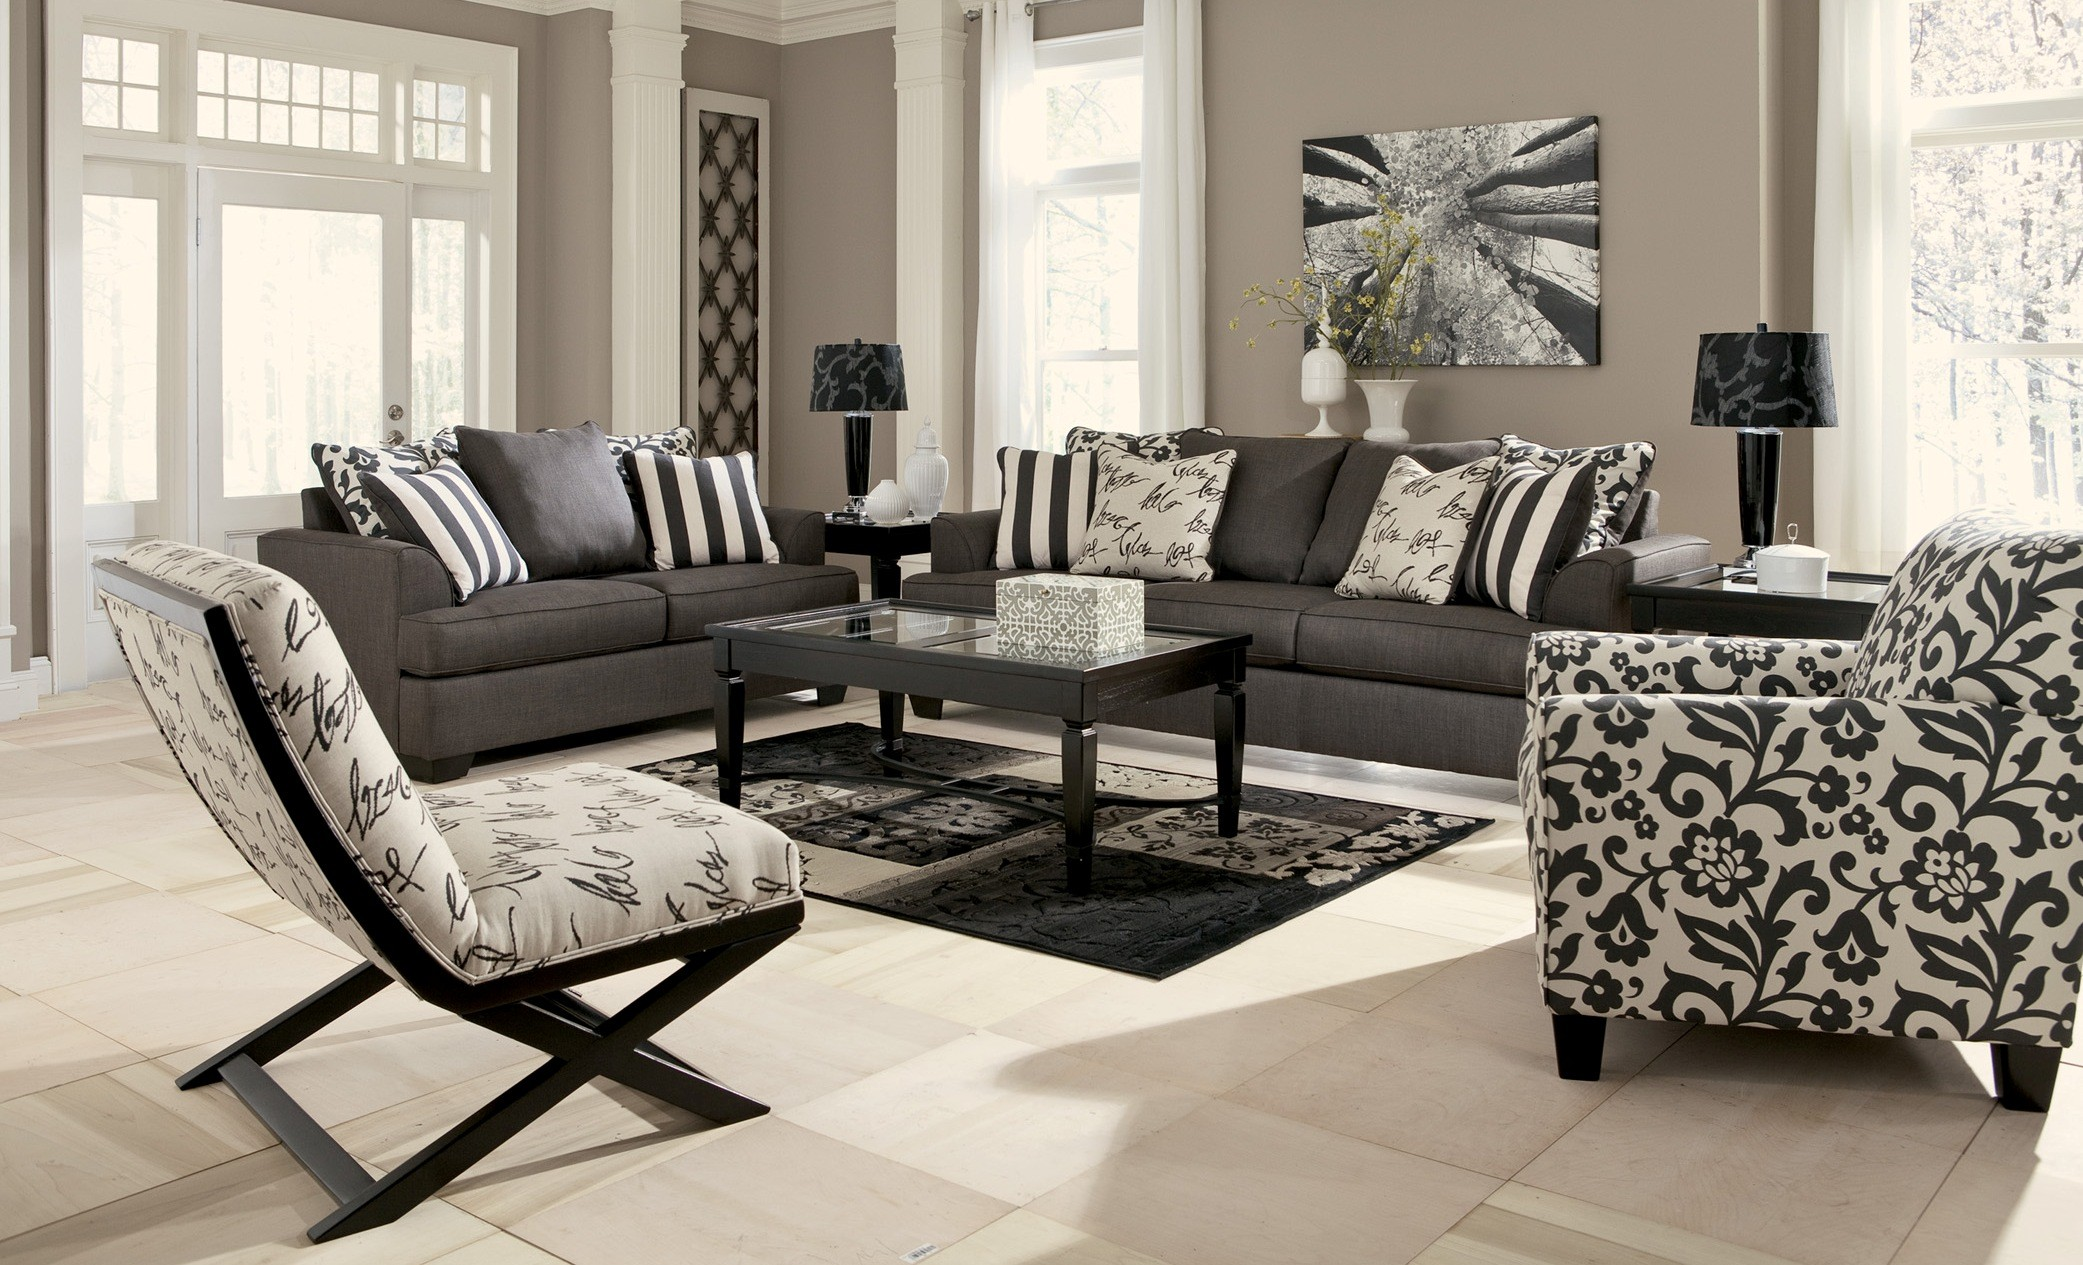 Levon Charcoal Living Room Set From Ashley (73403